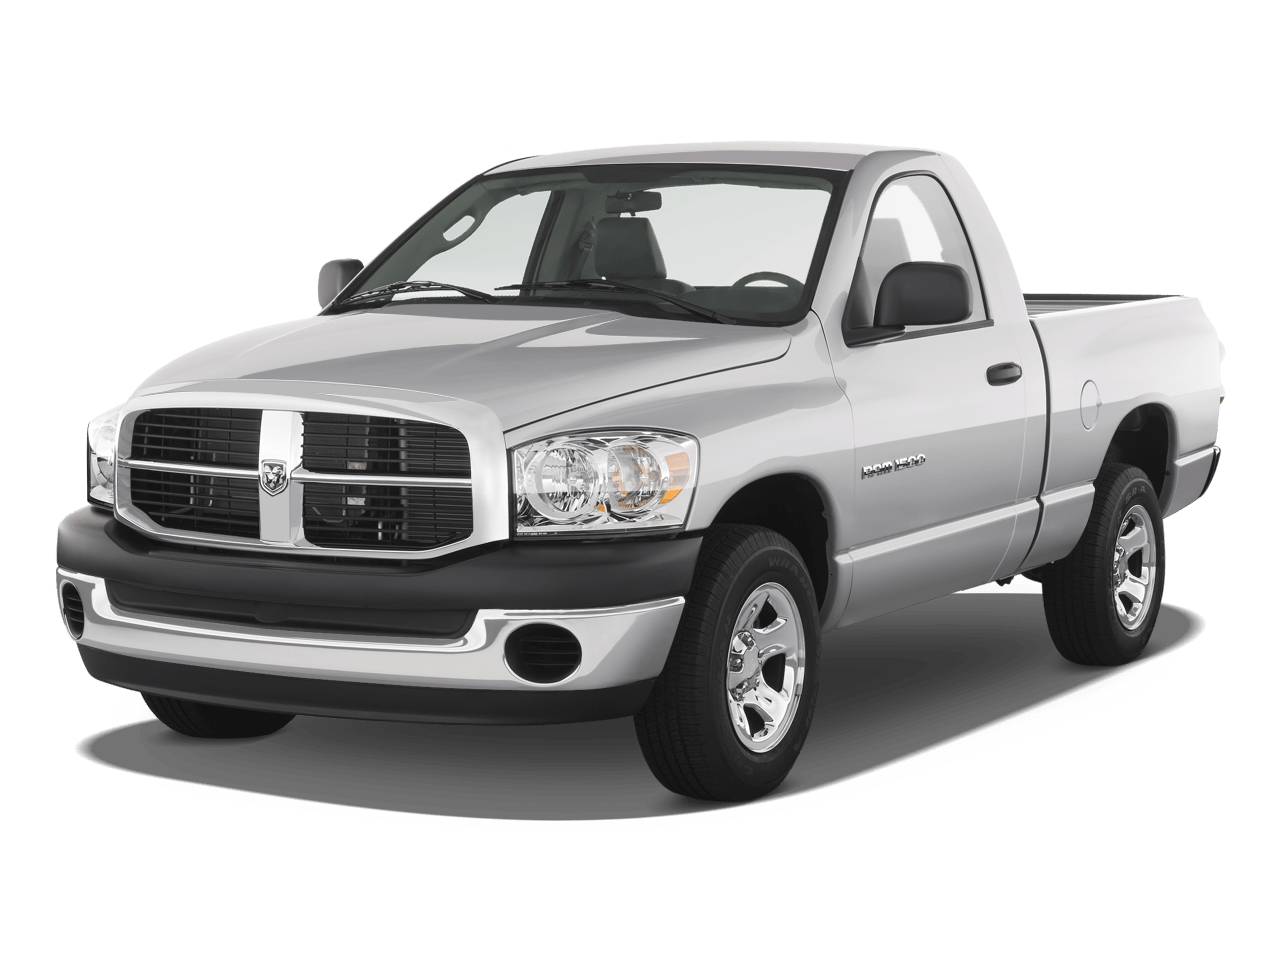 dodge ram central heating wiring diagram 2 pumps 2007 1500 reviews and rating motor trend